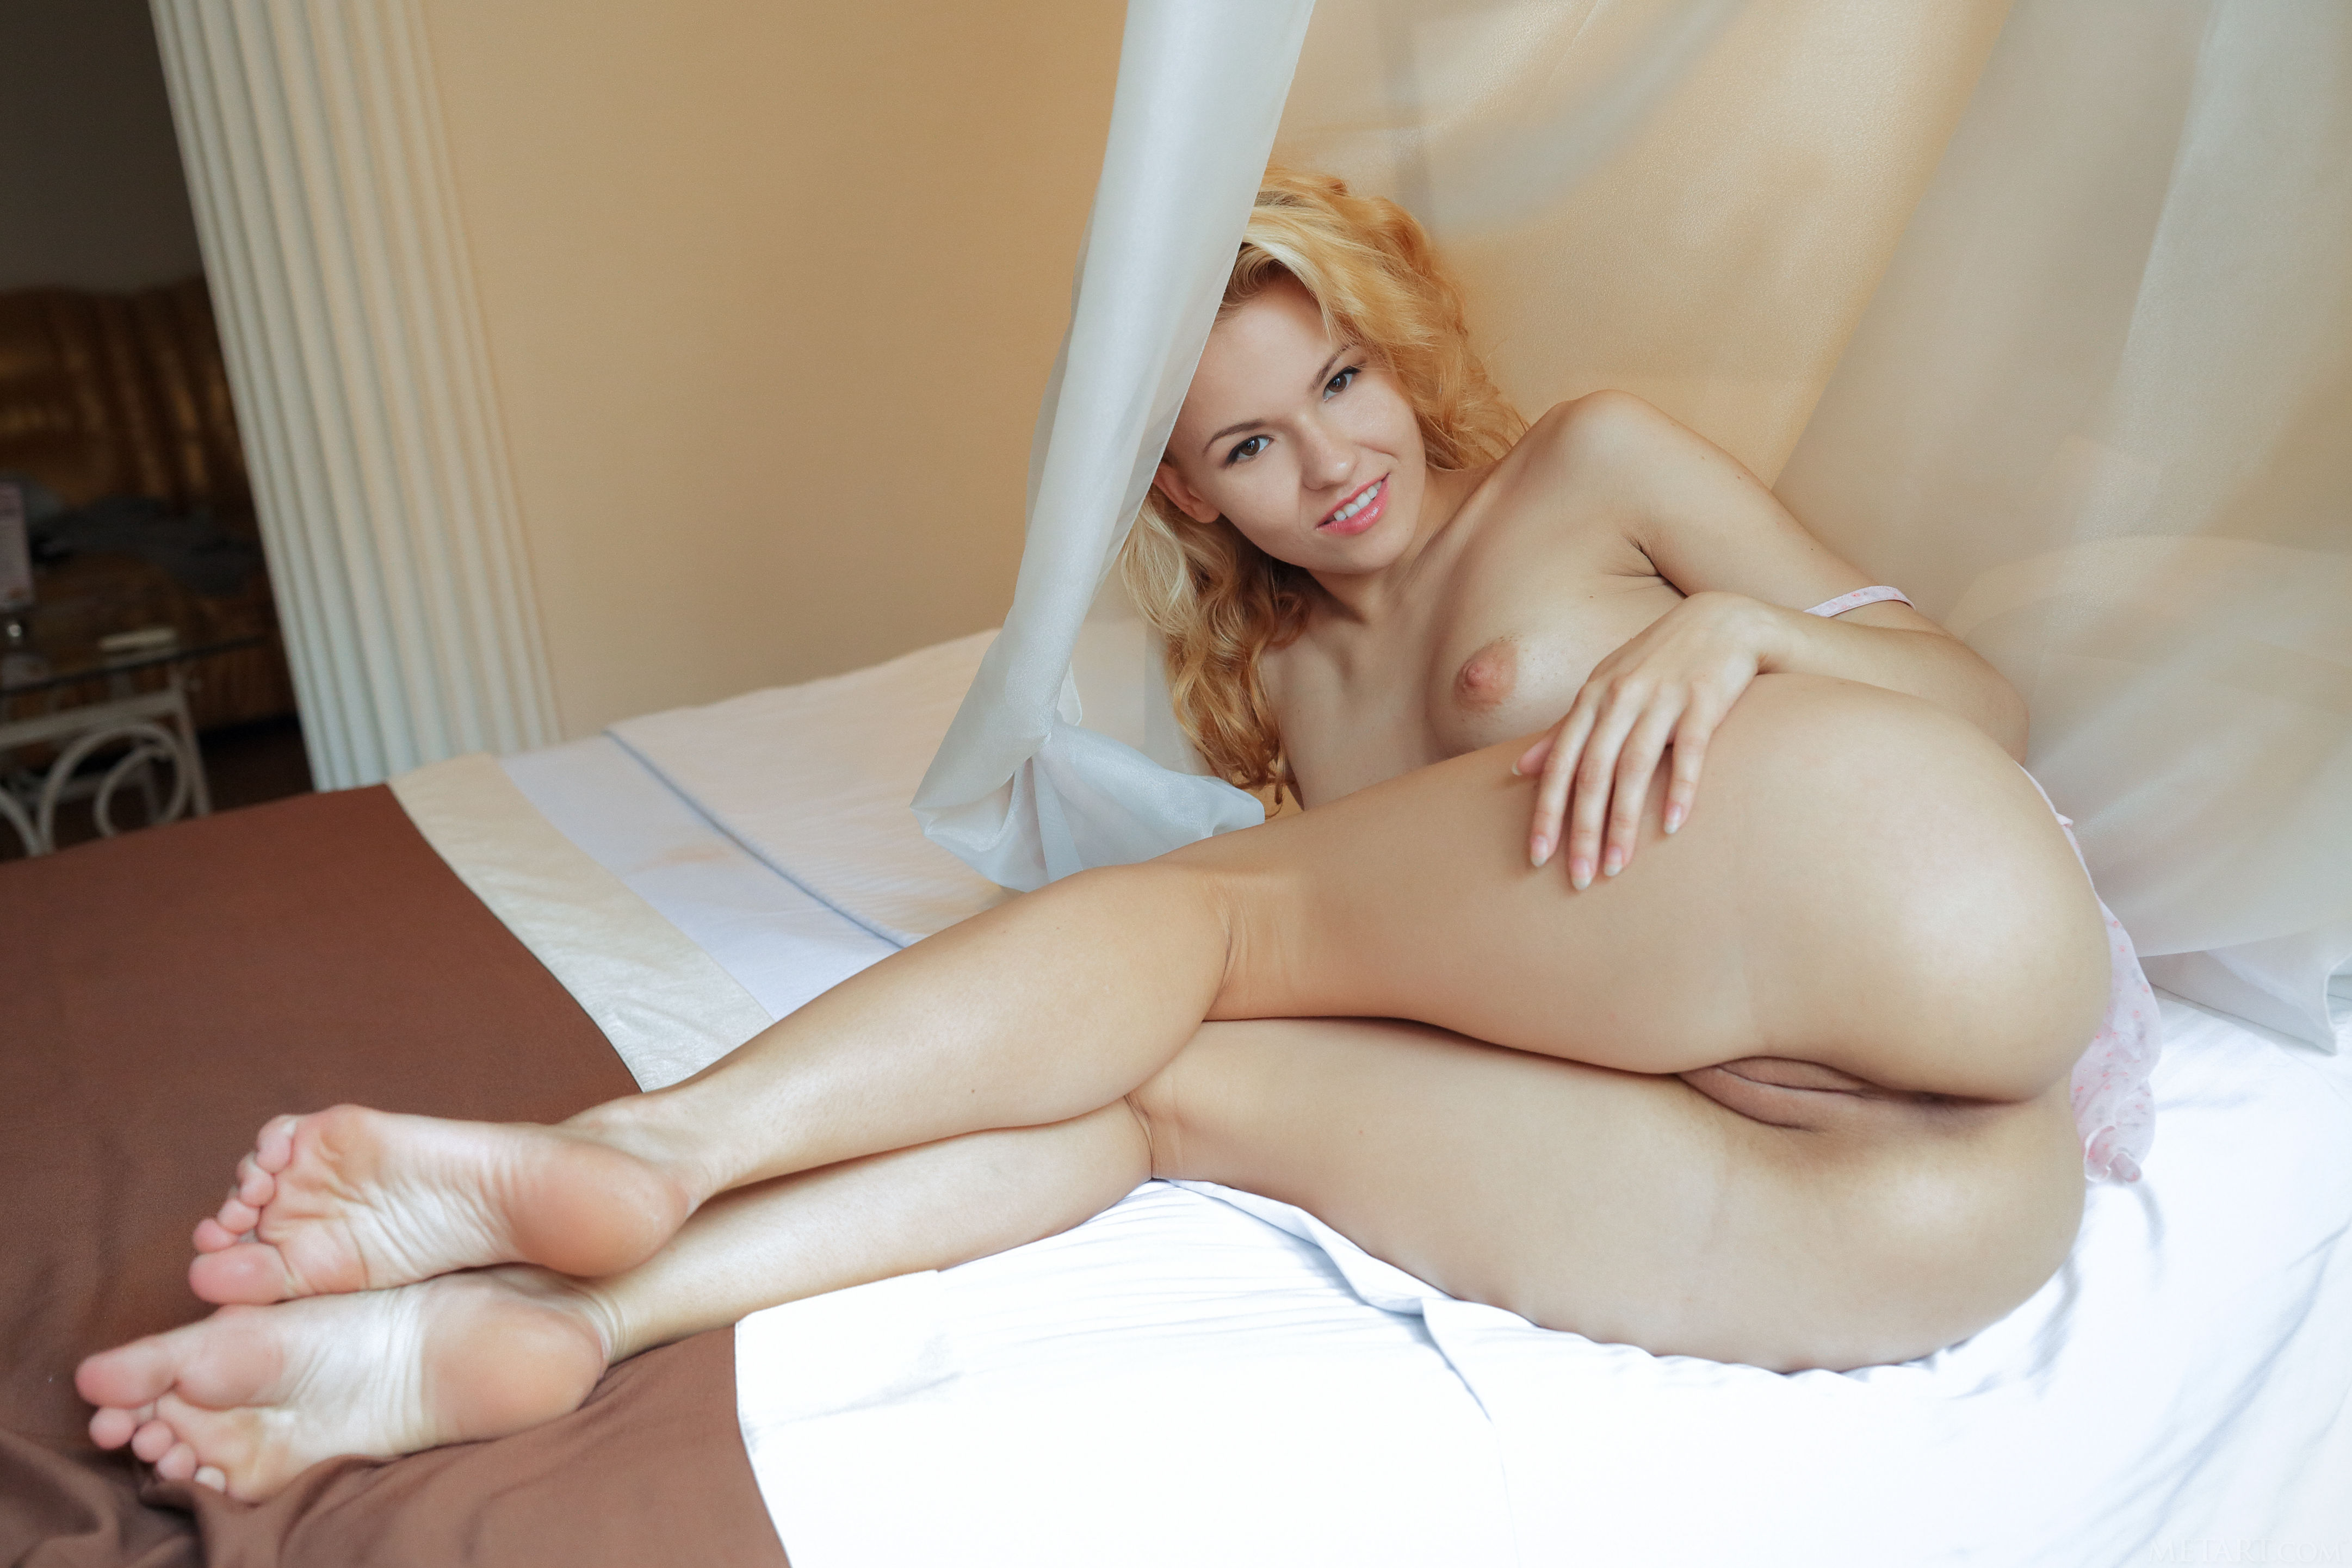 The Pussy ass feet sole more than